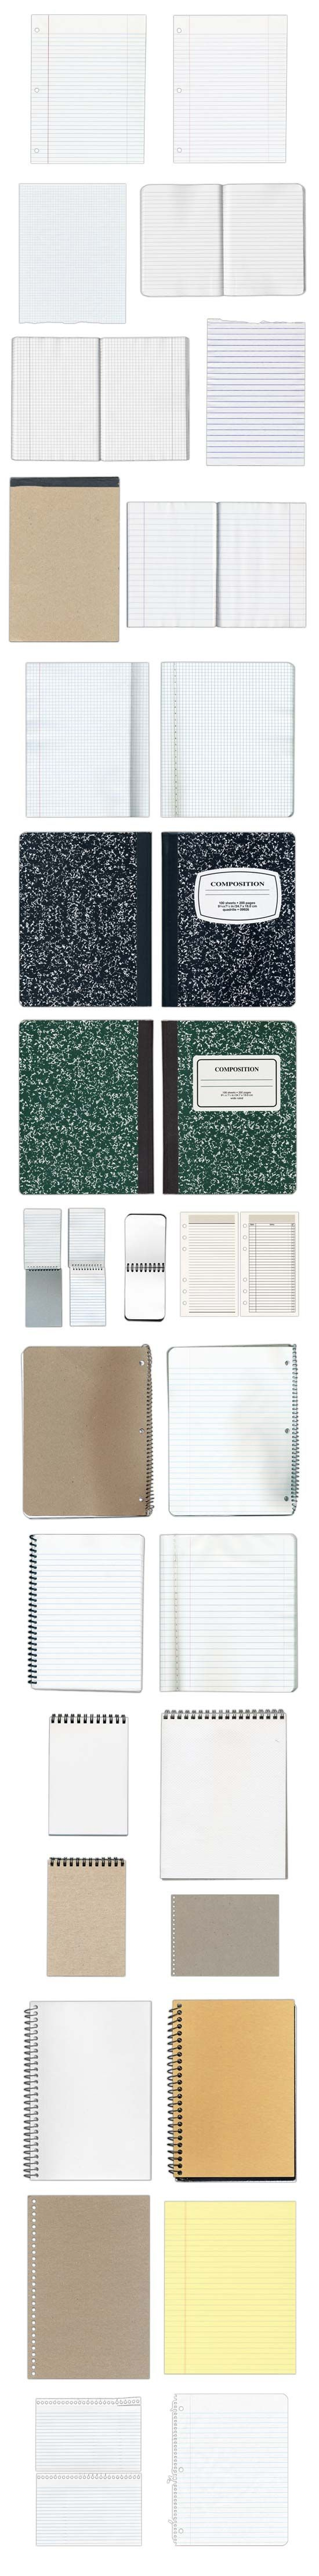 lots of free notepad and notebook textures / papiers à carreaux divers gratuits